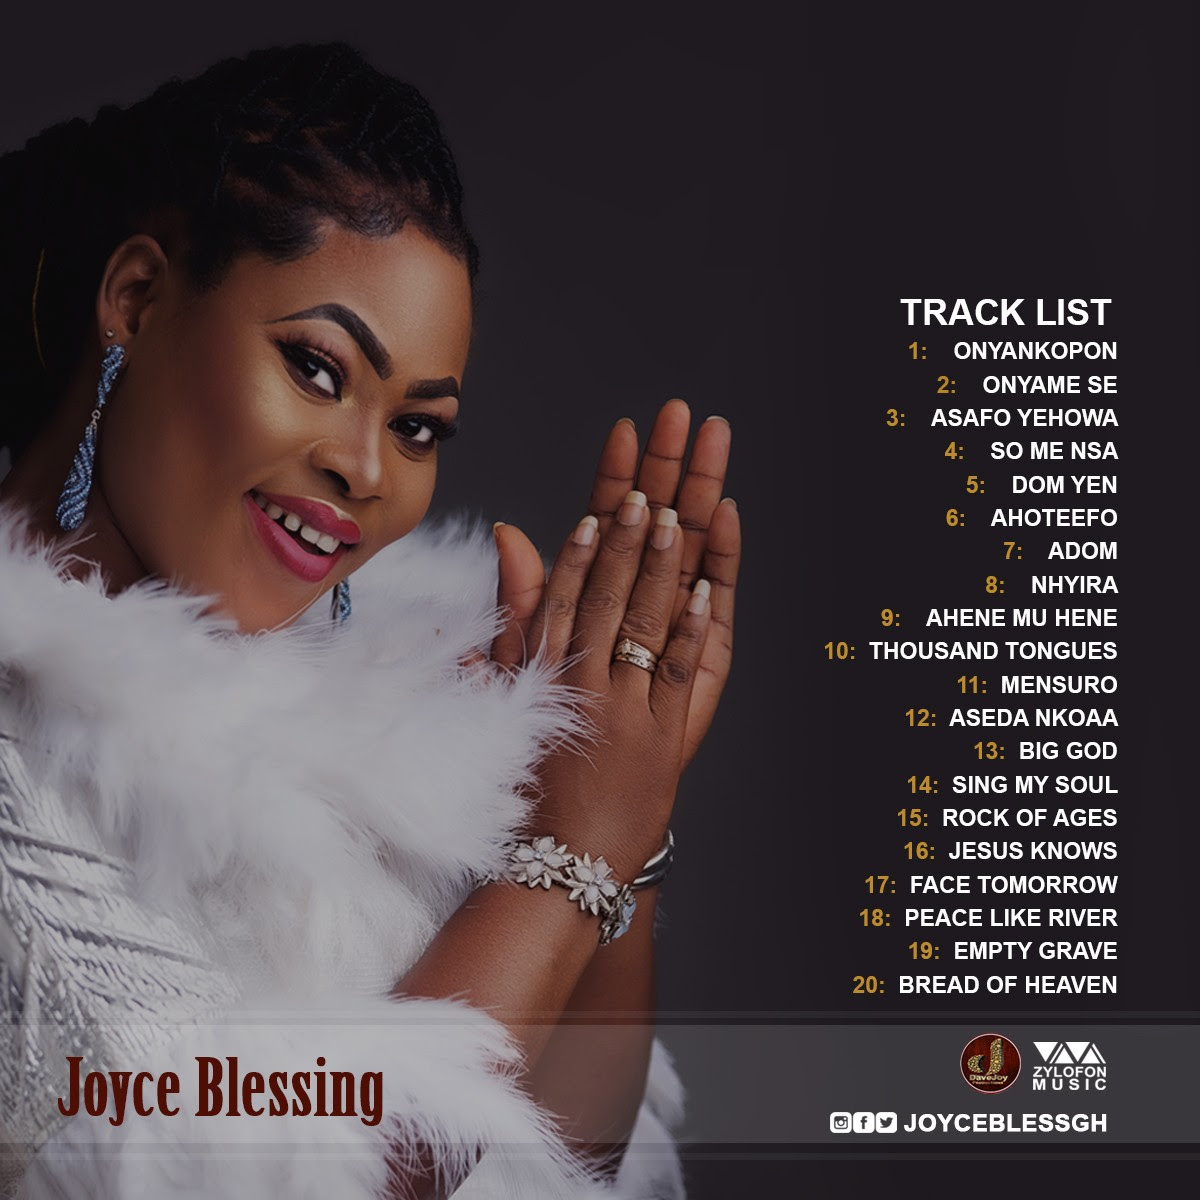 Joyce Blessing set to release 6th album, Blessings in Worship